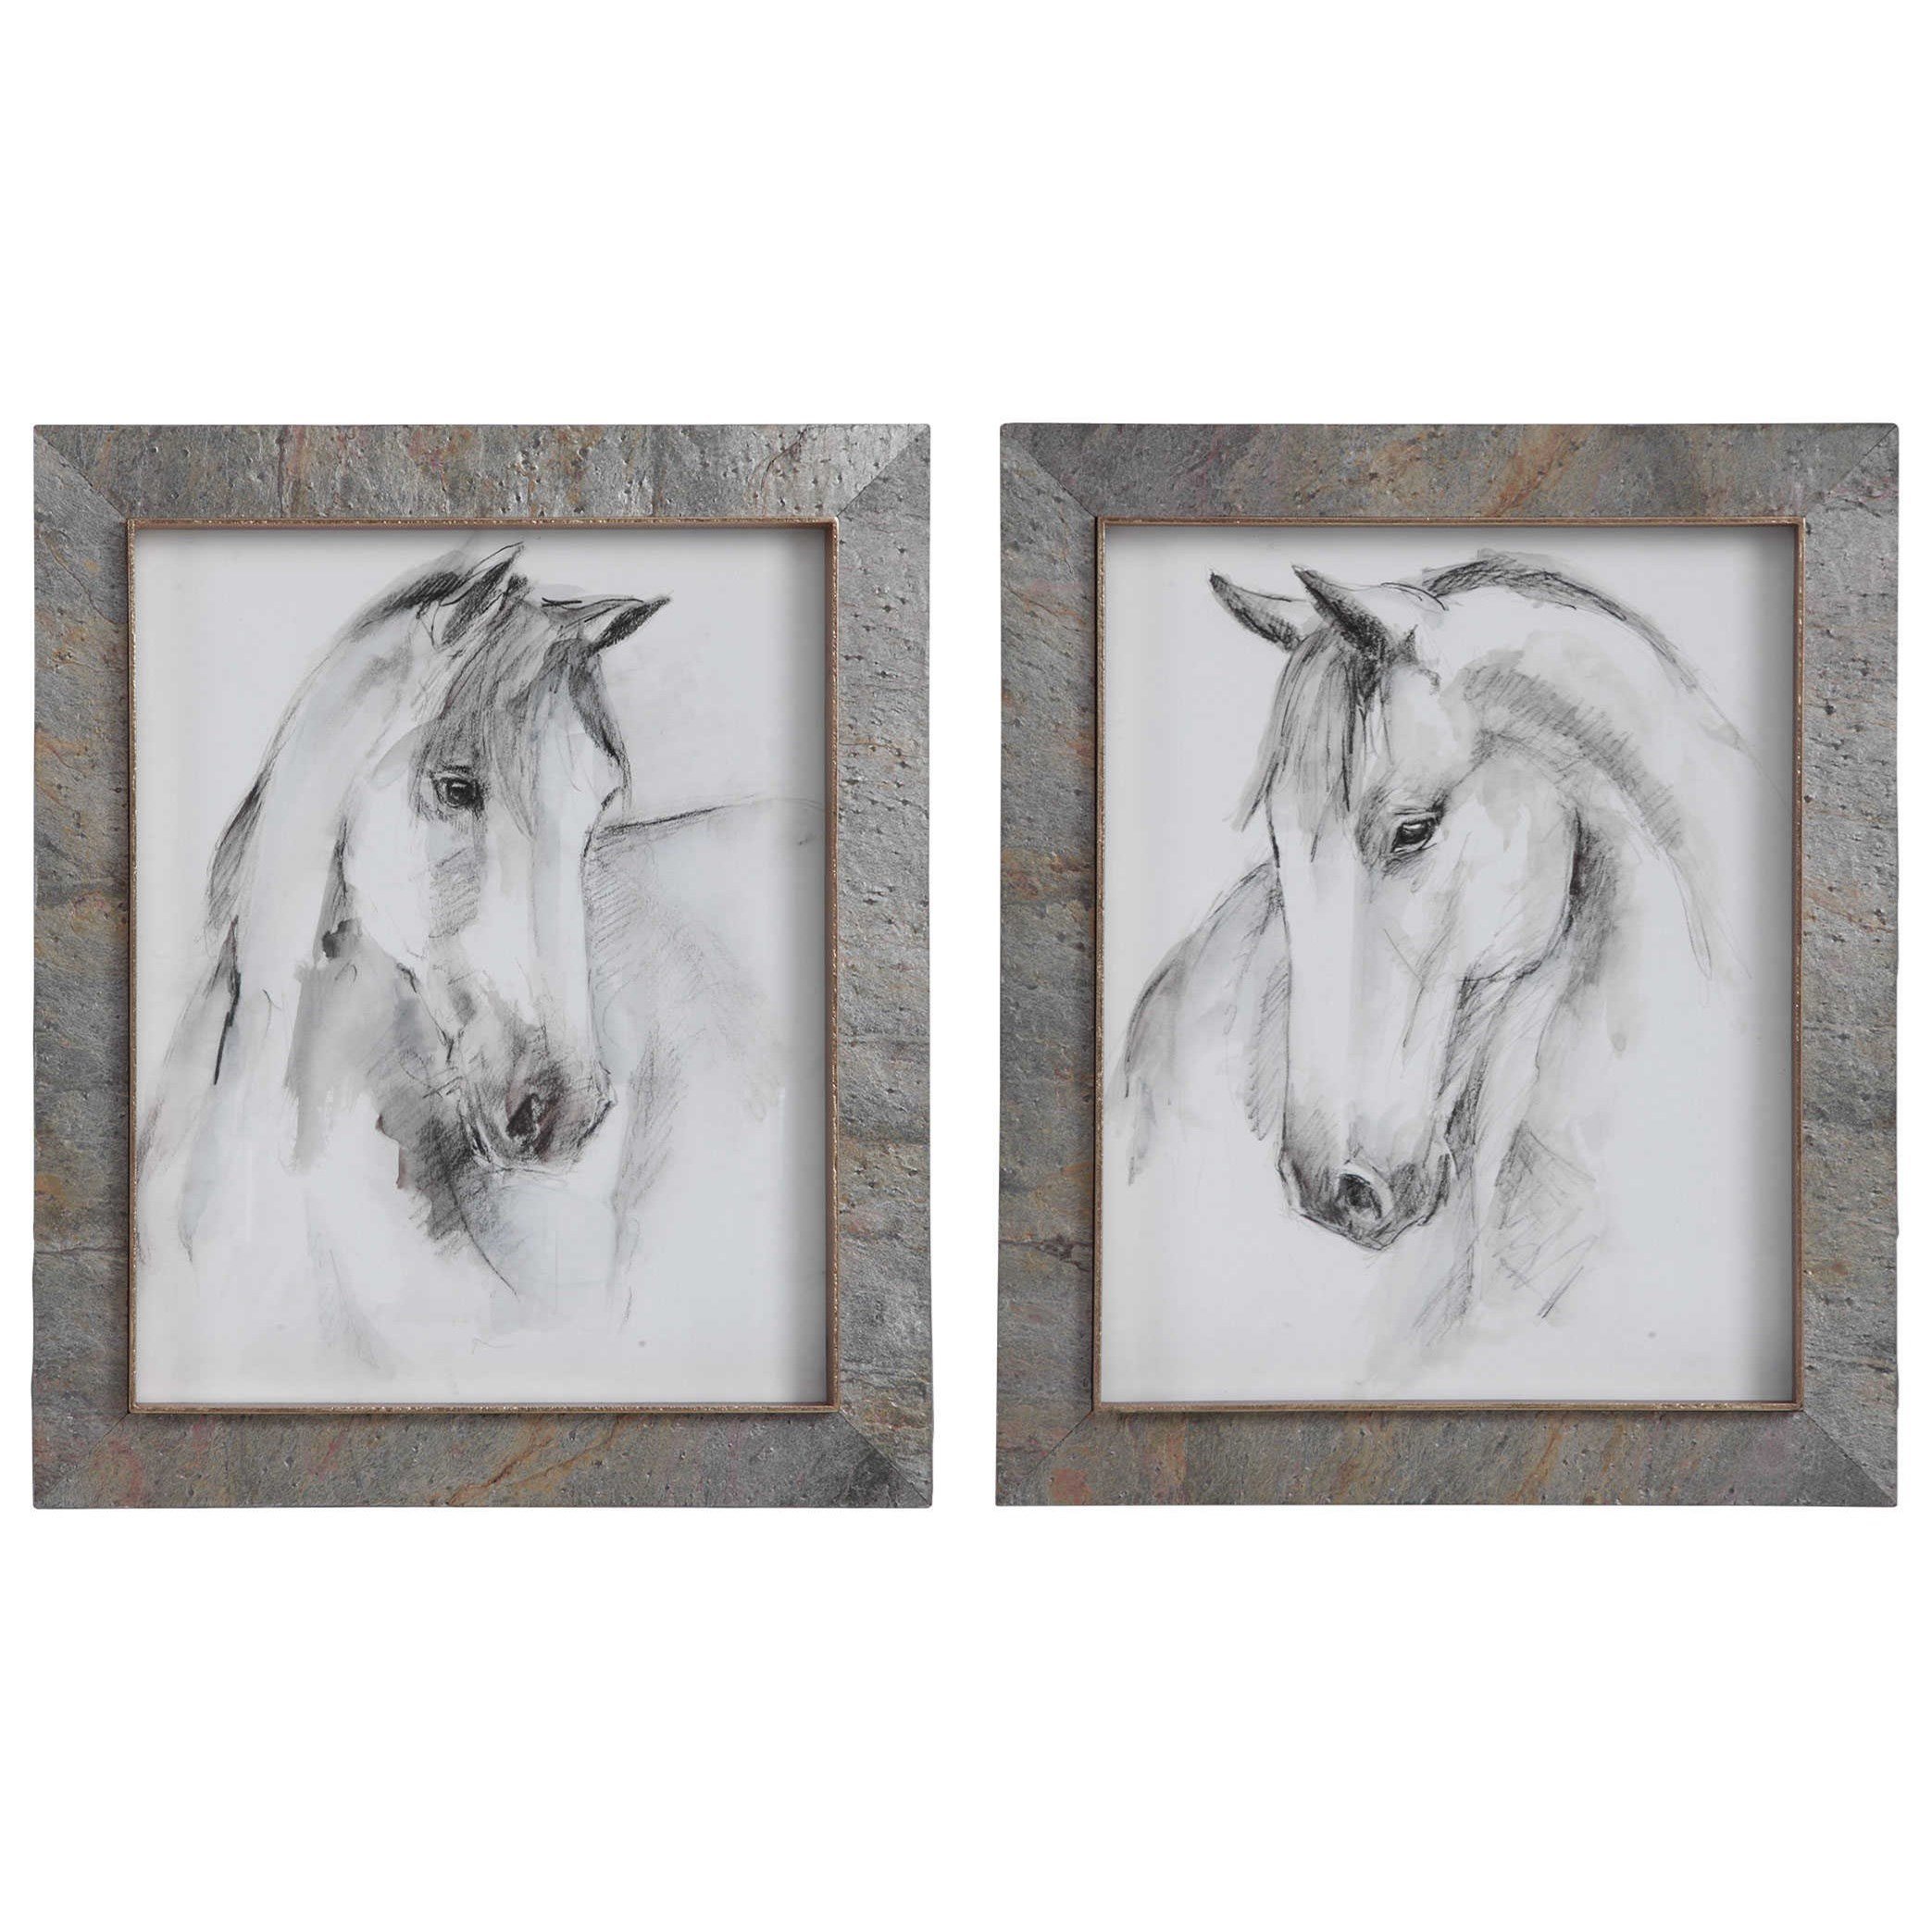 Framed Prints Equestrian Watercolor Framed Prints, S/2 by Uttermost at Furniture Superstore - Rochester, MN